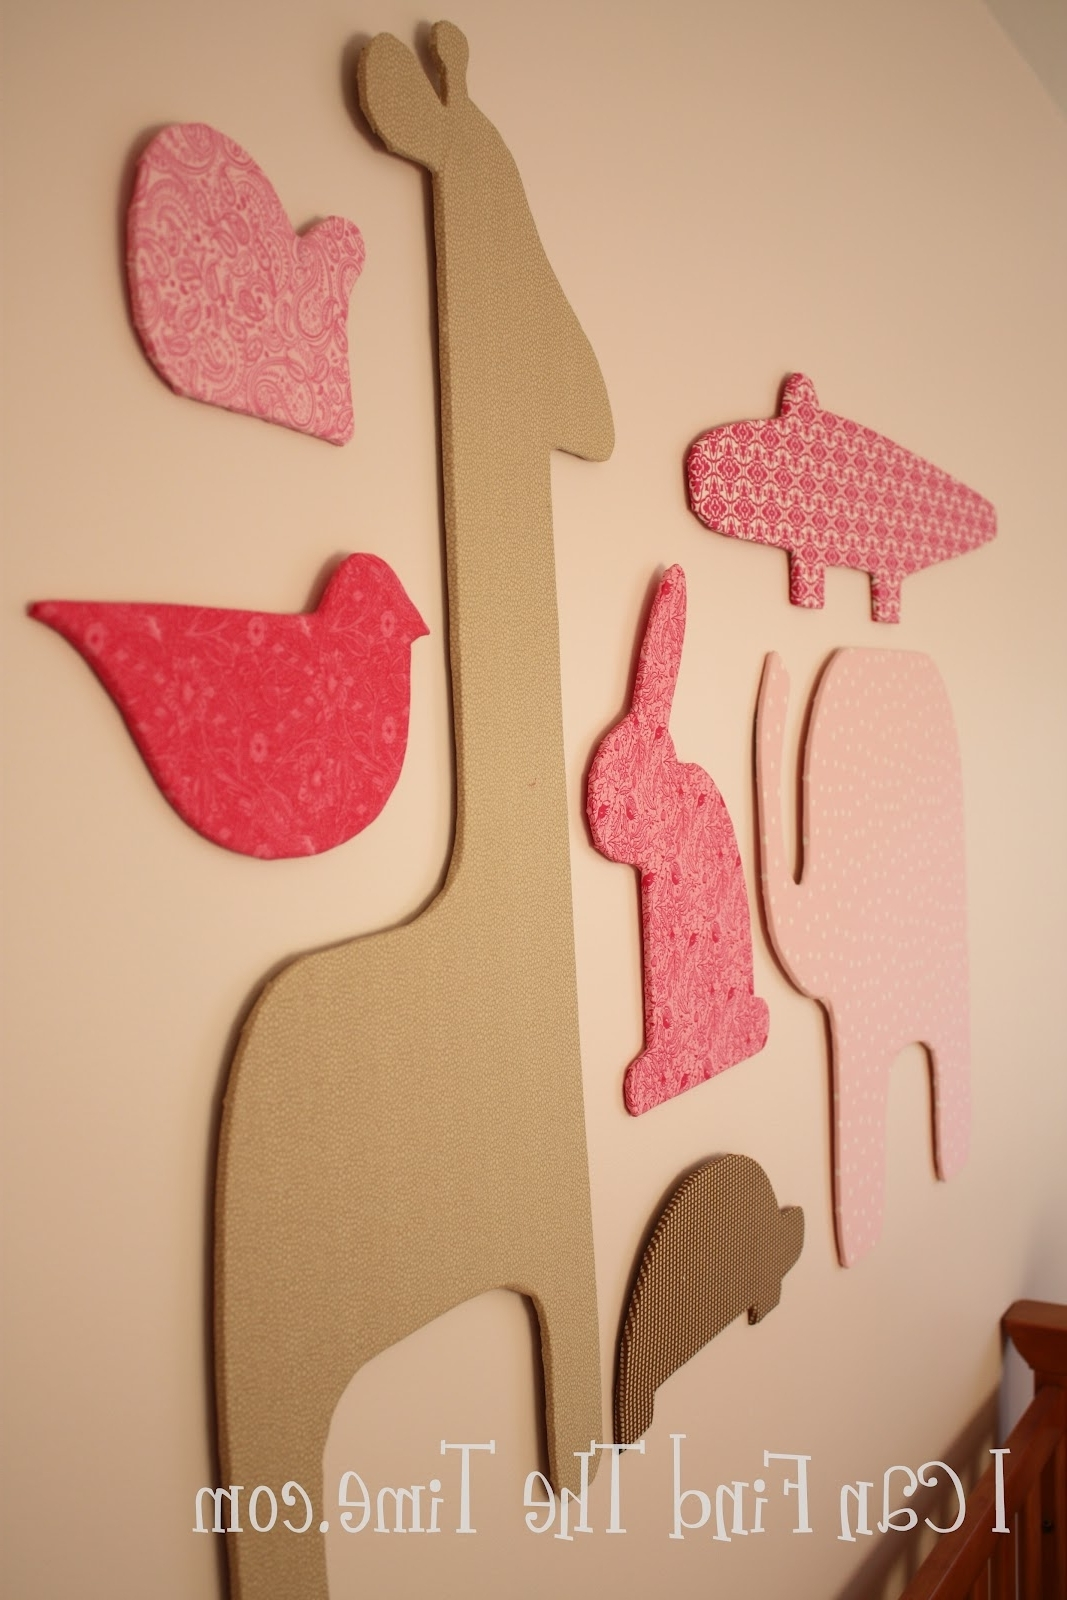 Well Known Easy Fabric Silhouette Wall Art Pertaining To Foam Fabric Wall Art (View 13 of 15)